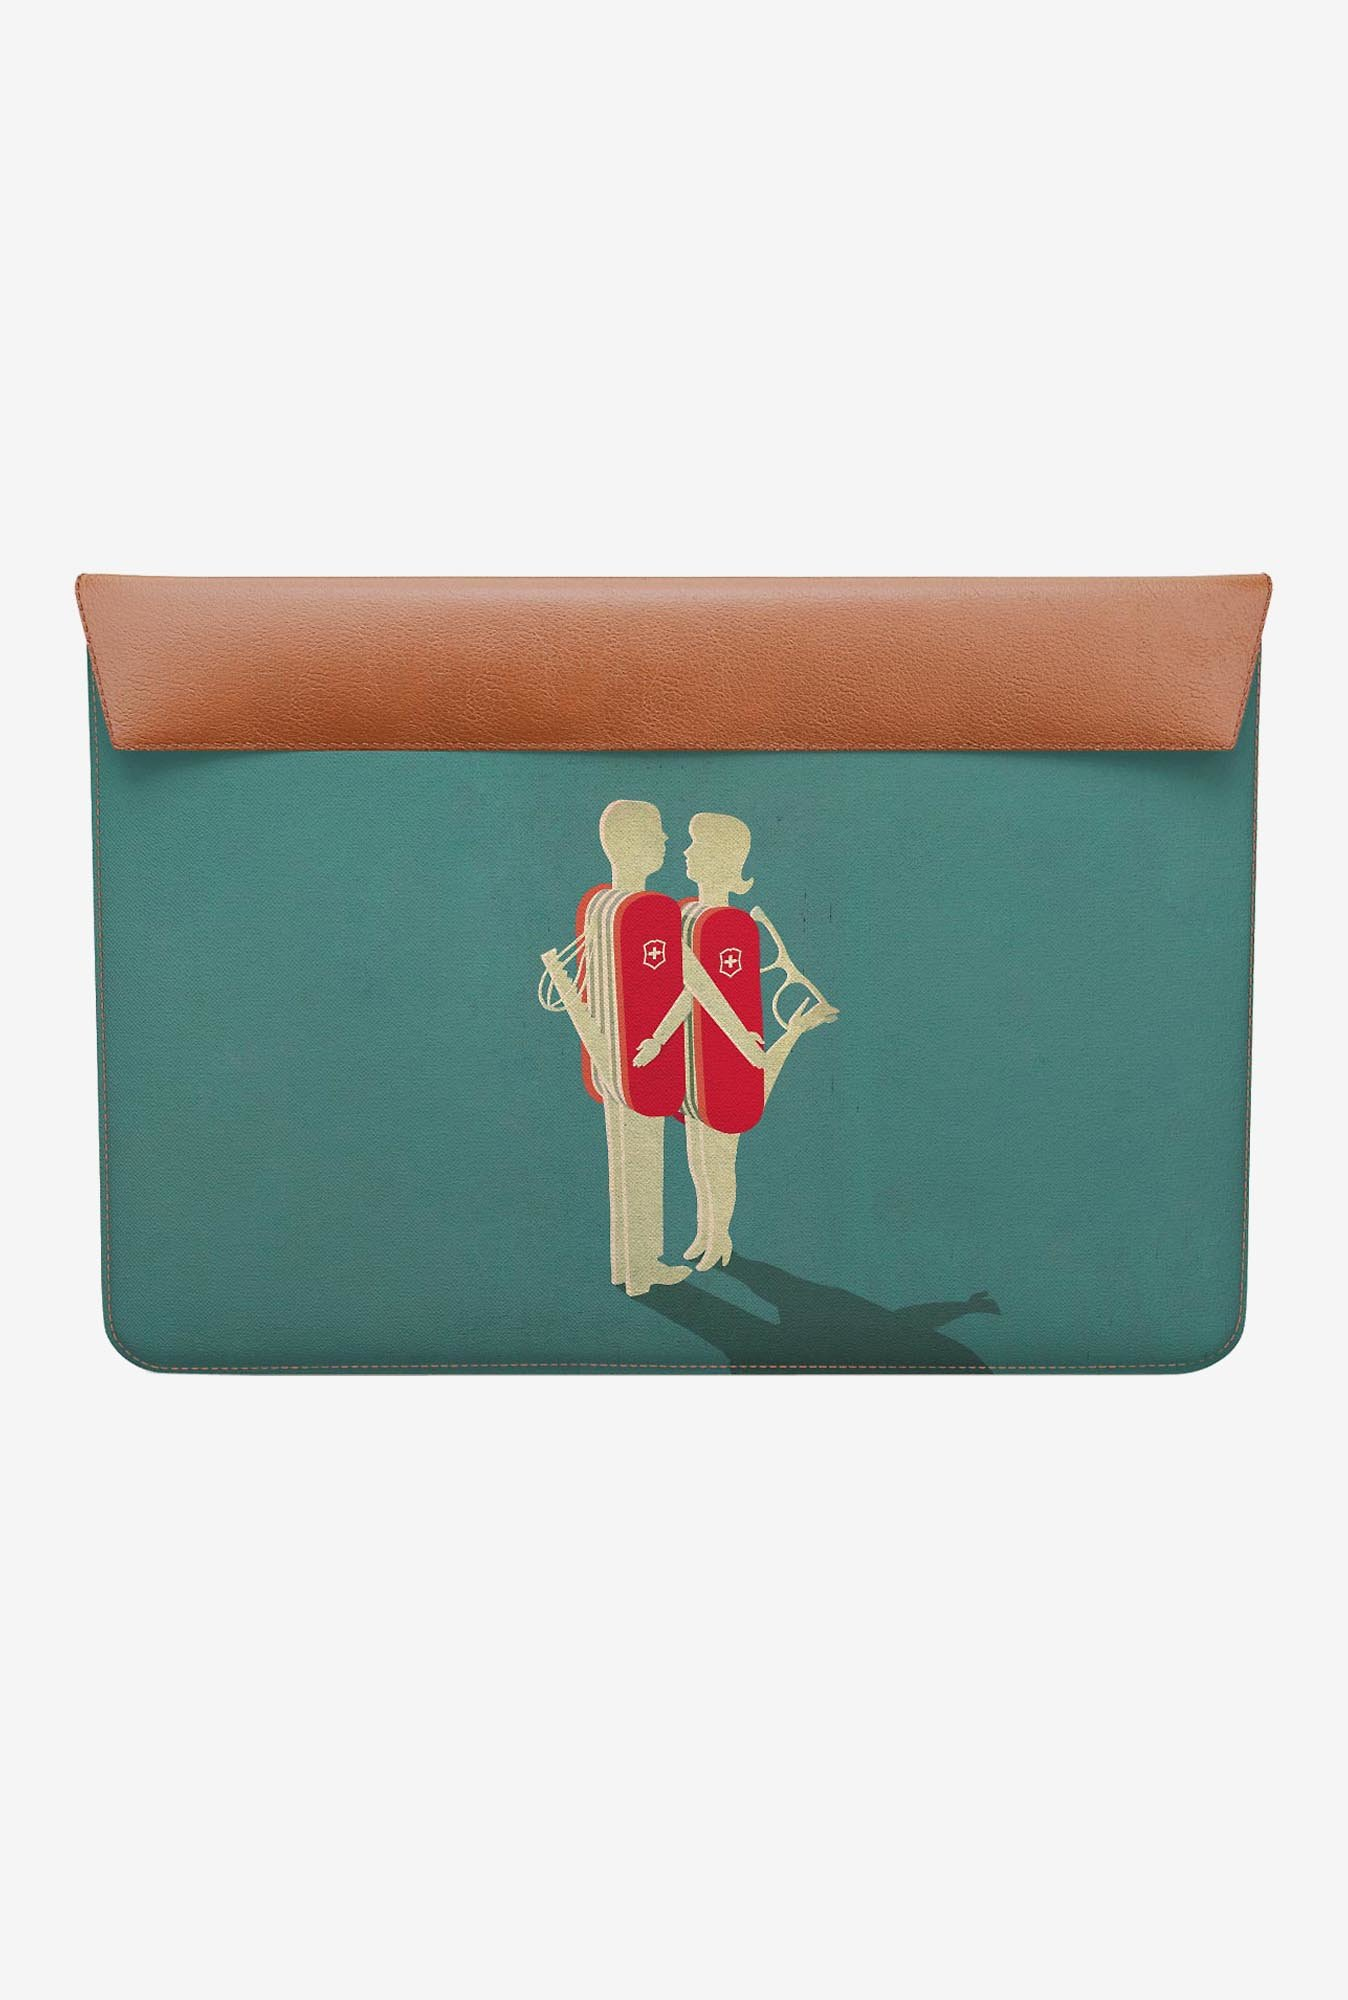 DailyObjects Relationship MacBook Air 13 Envelope Sleeve